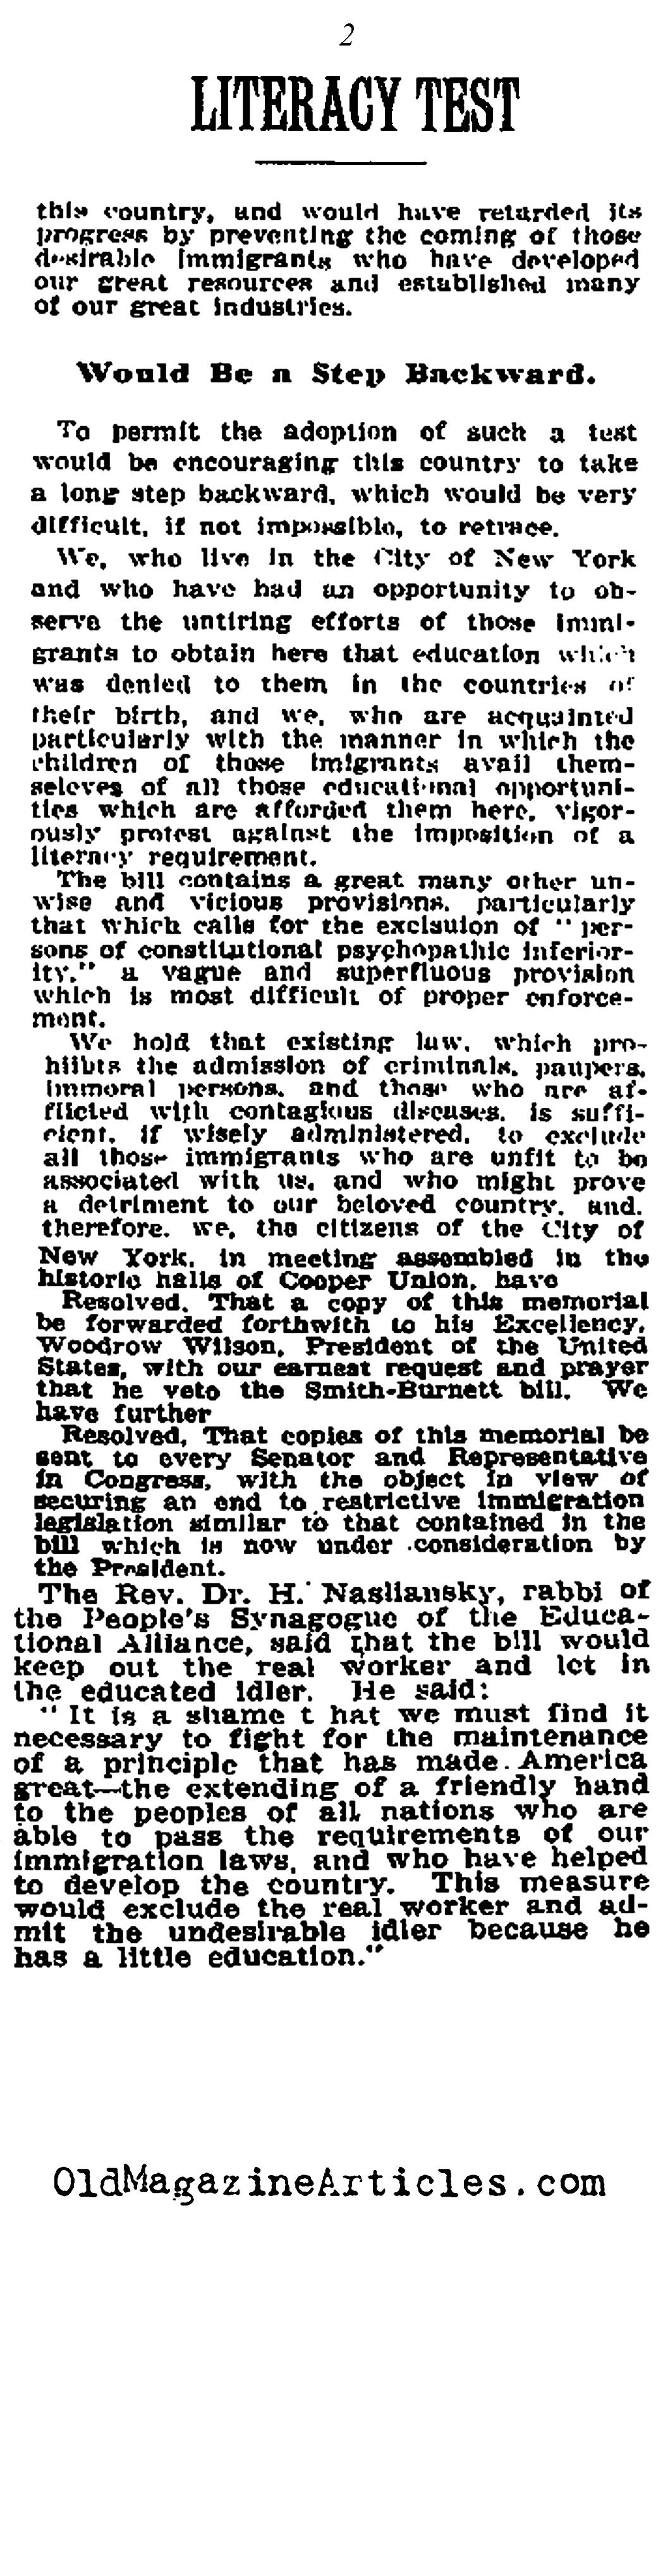 Immigrant Literacy Tests Passed (New York Times, 1915)